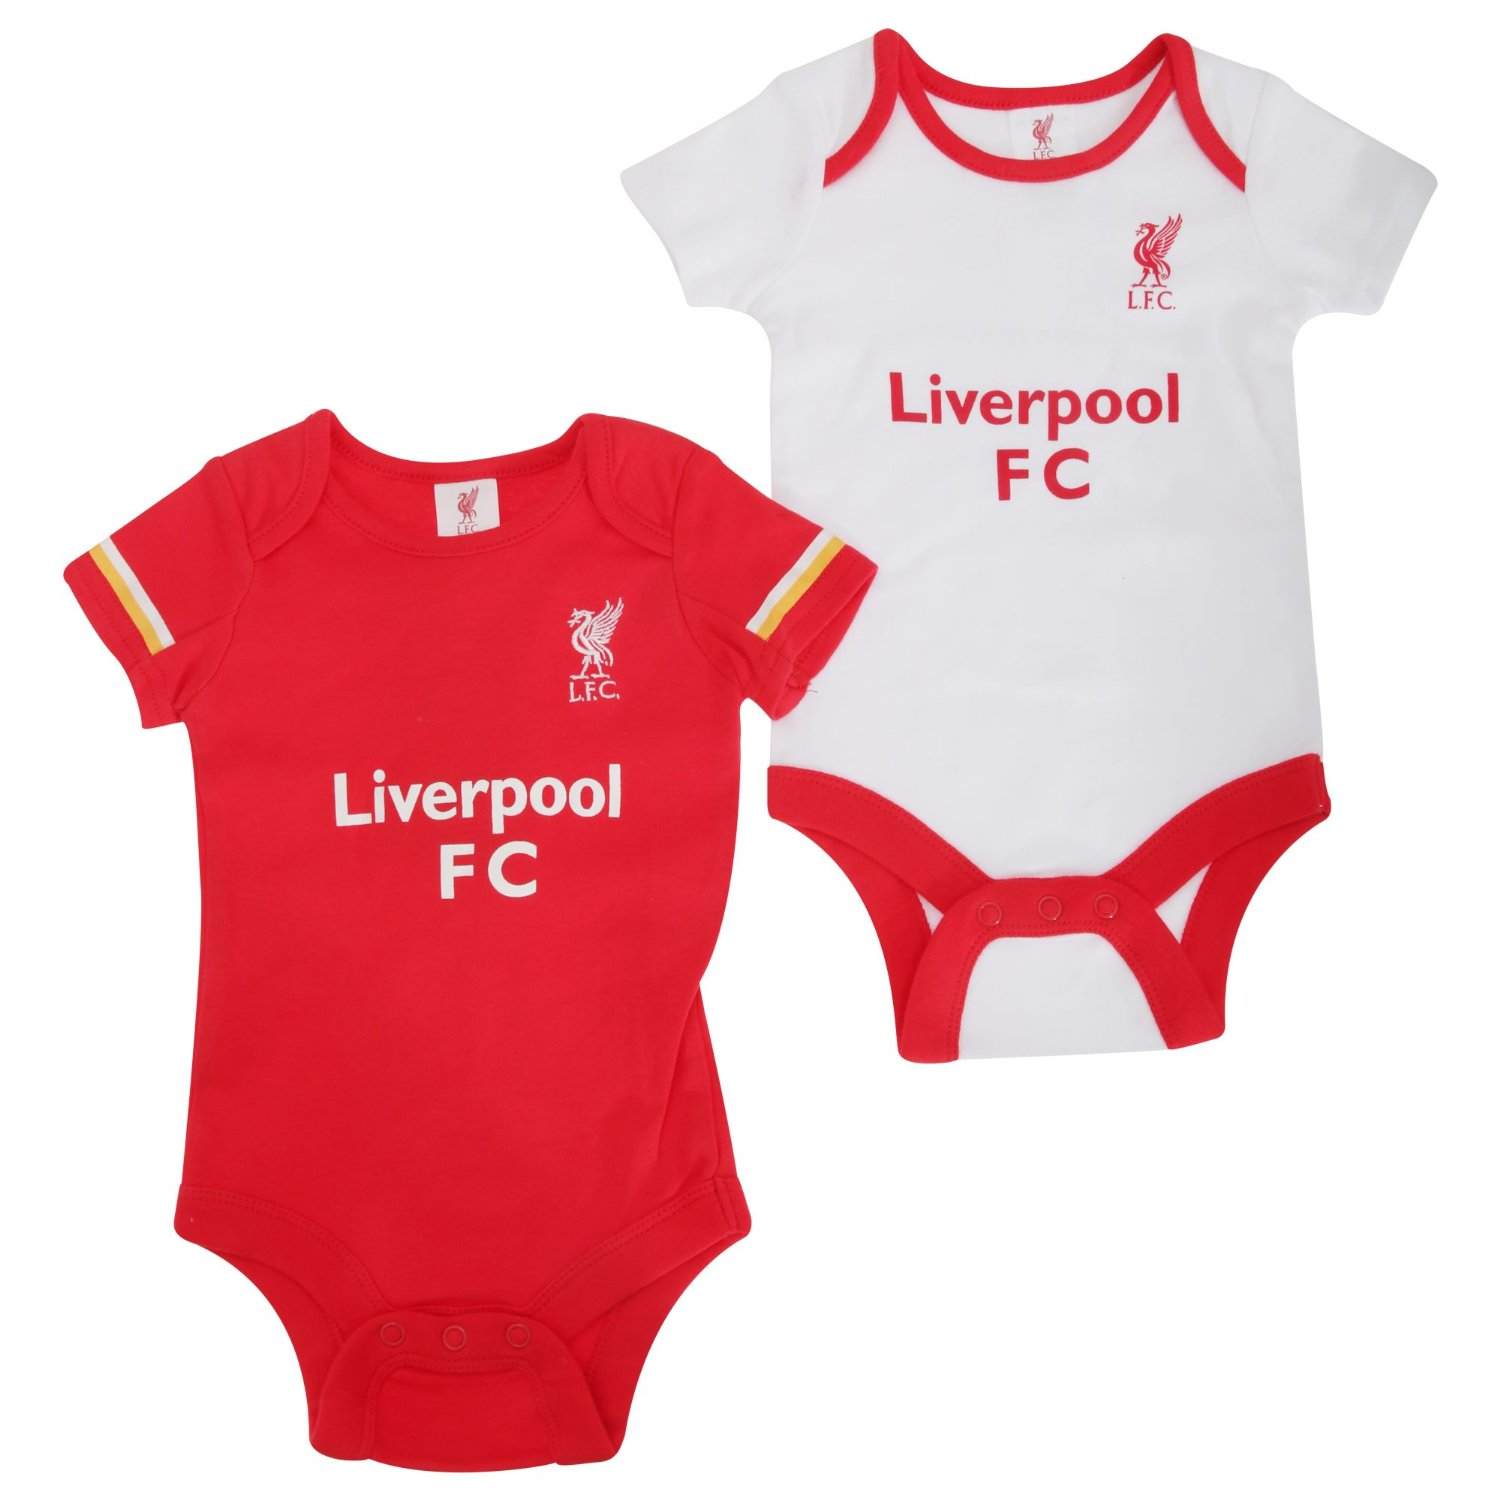 82f3aaa70 Get Quotations · Liverpool FC Authentic EPL Baby Onesies 2 Pack 15 16 design